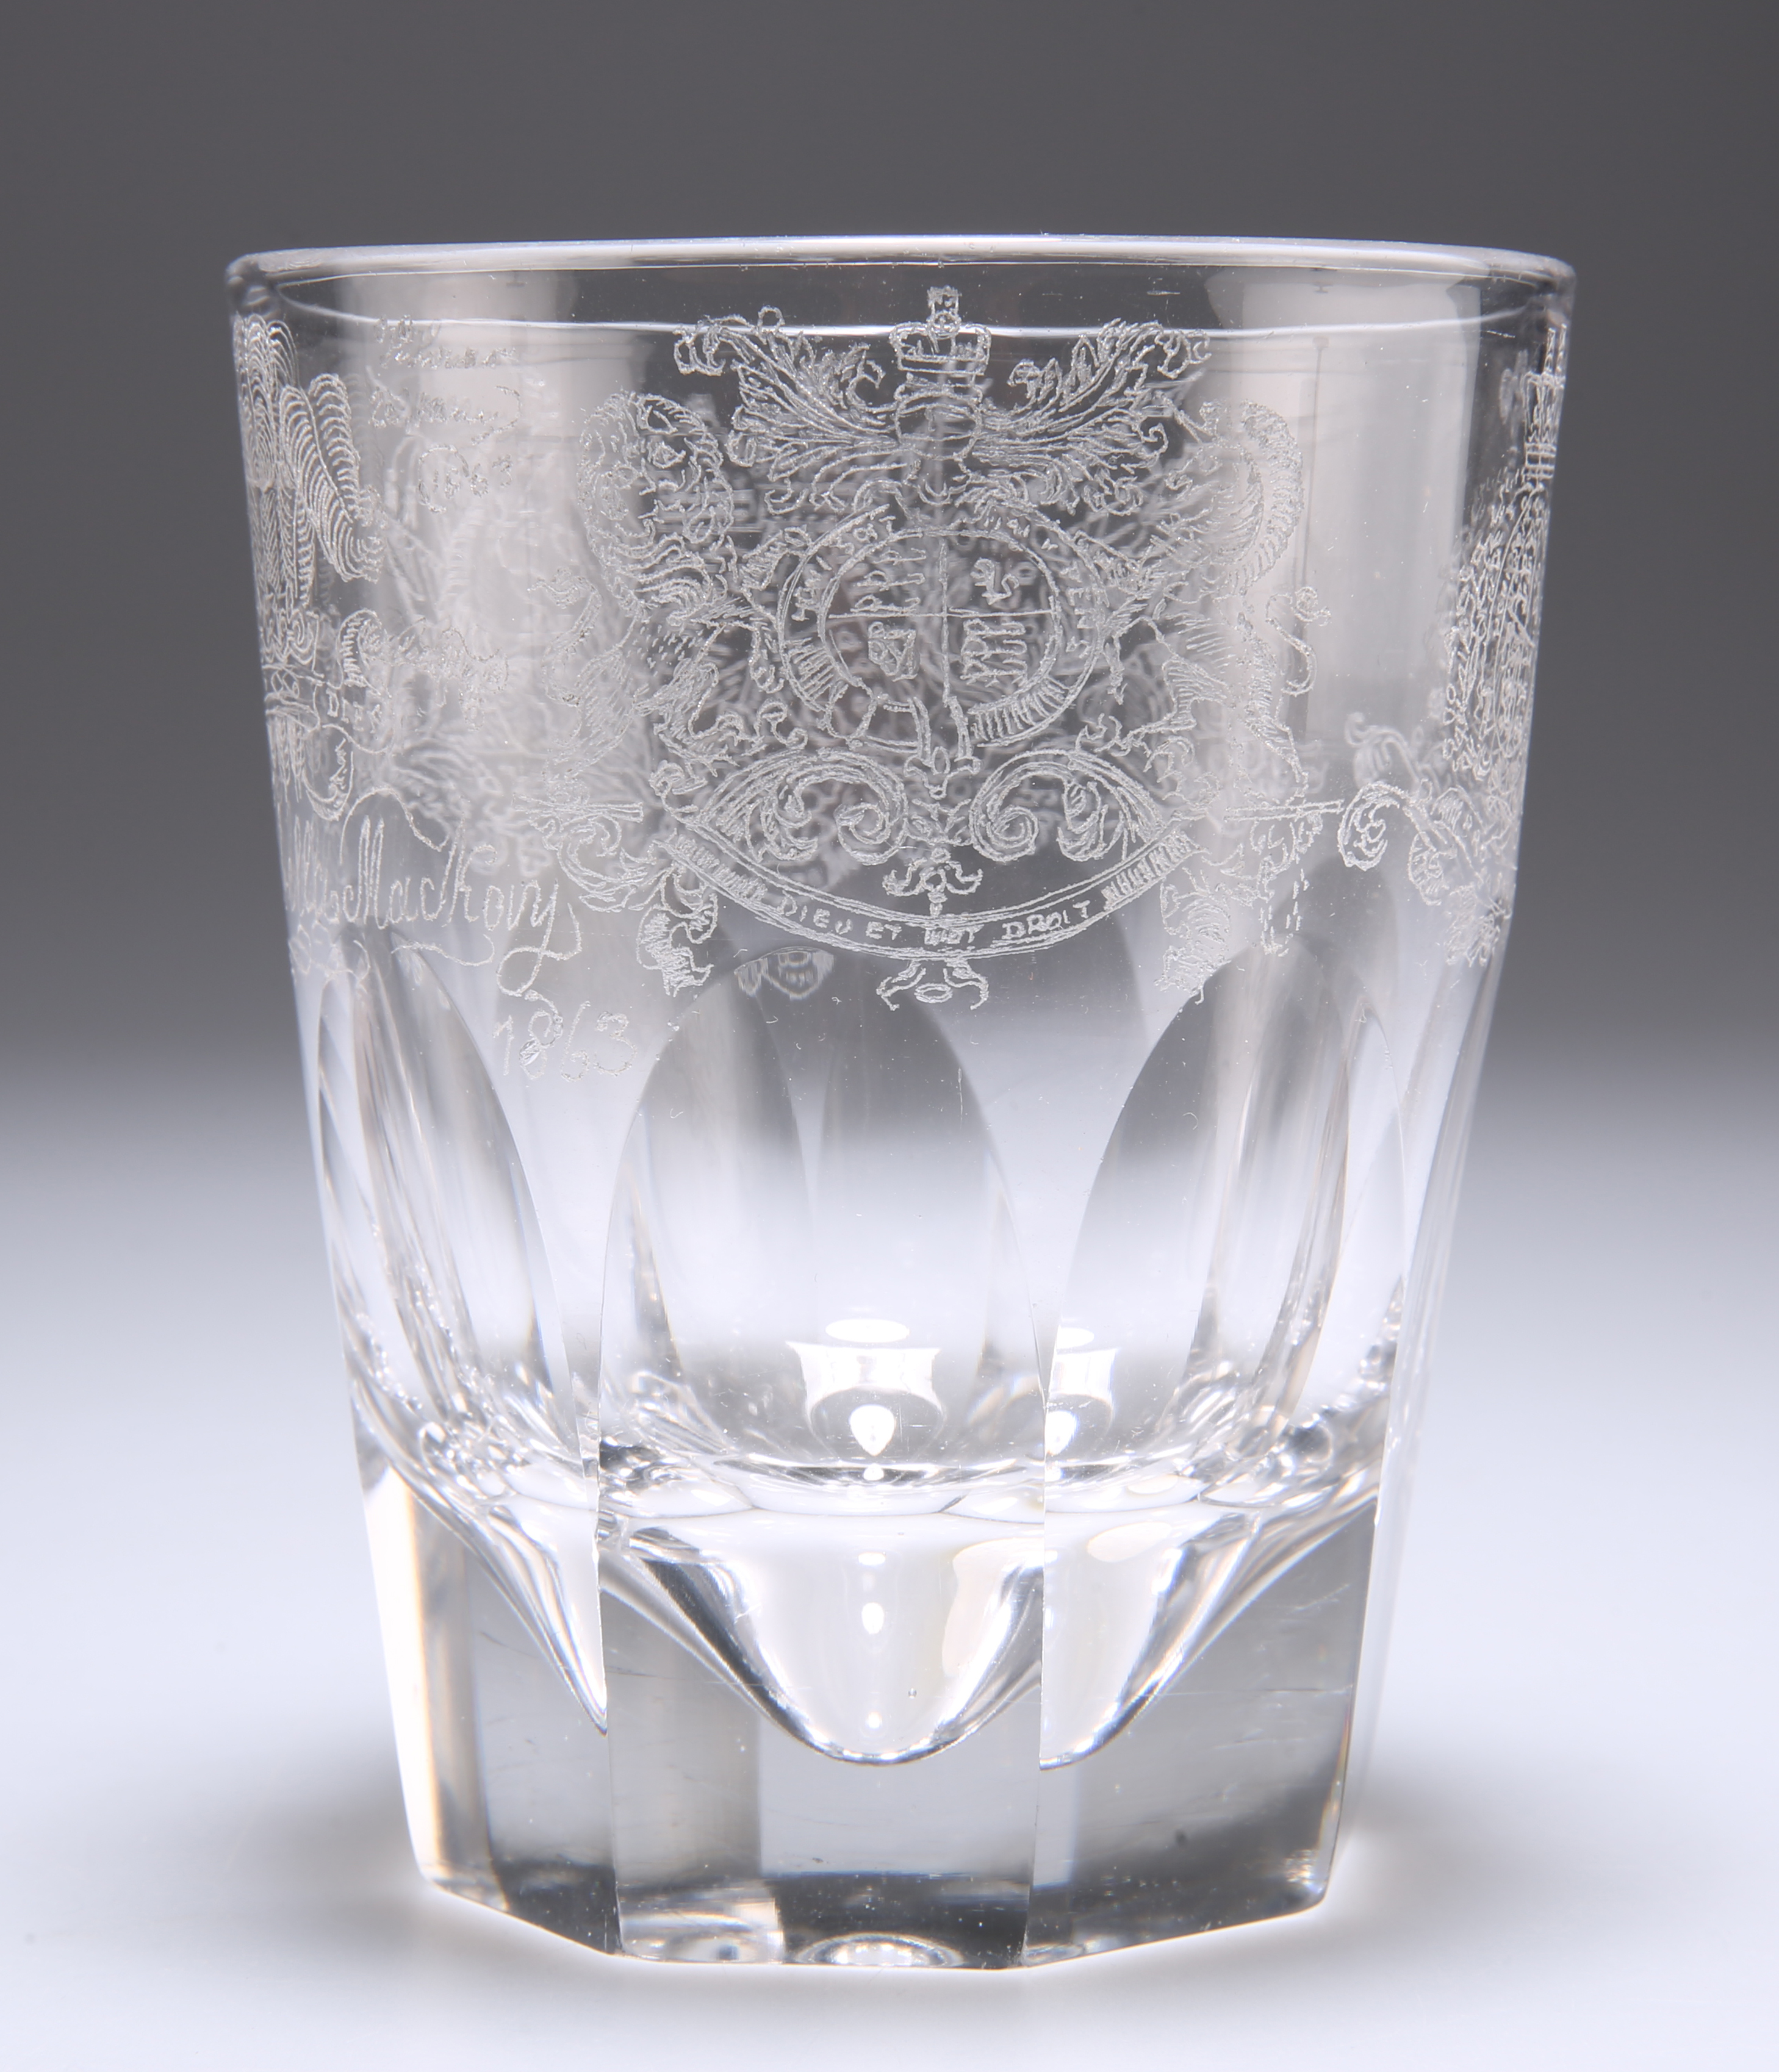 A VICTORIAN GLASS TUMBLER CUP, POSSIBLY BY THOMAS SUTHERLAND